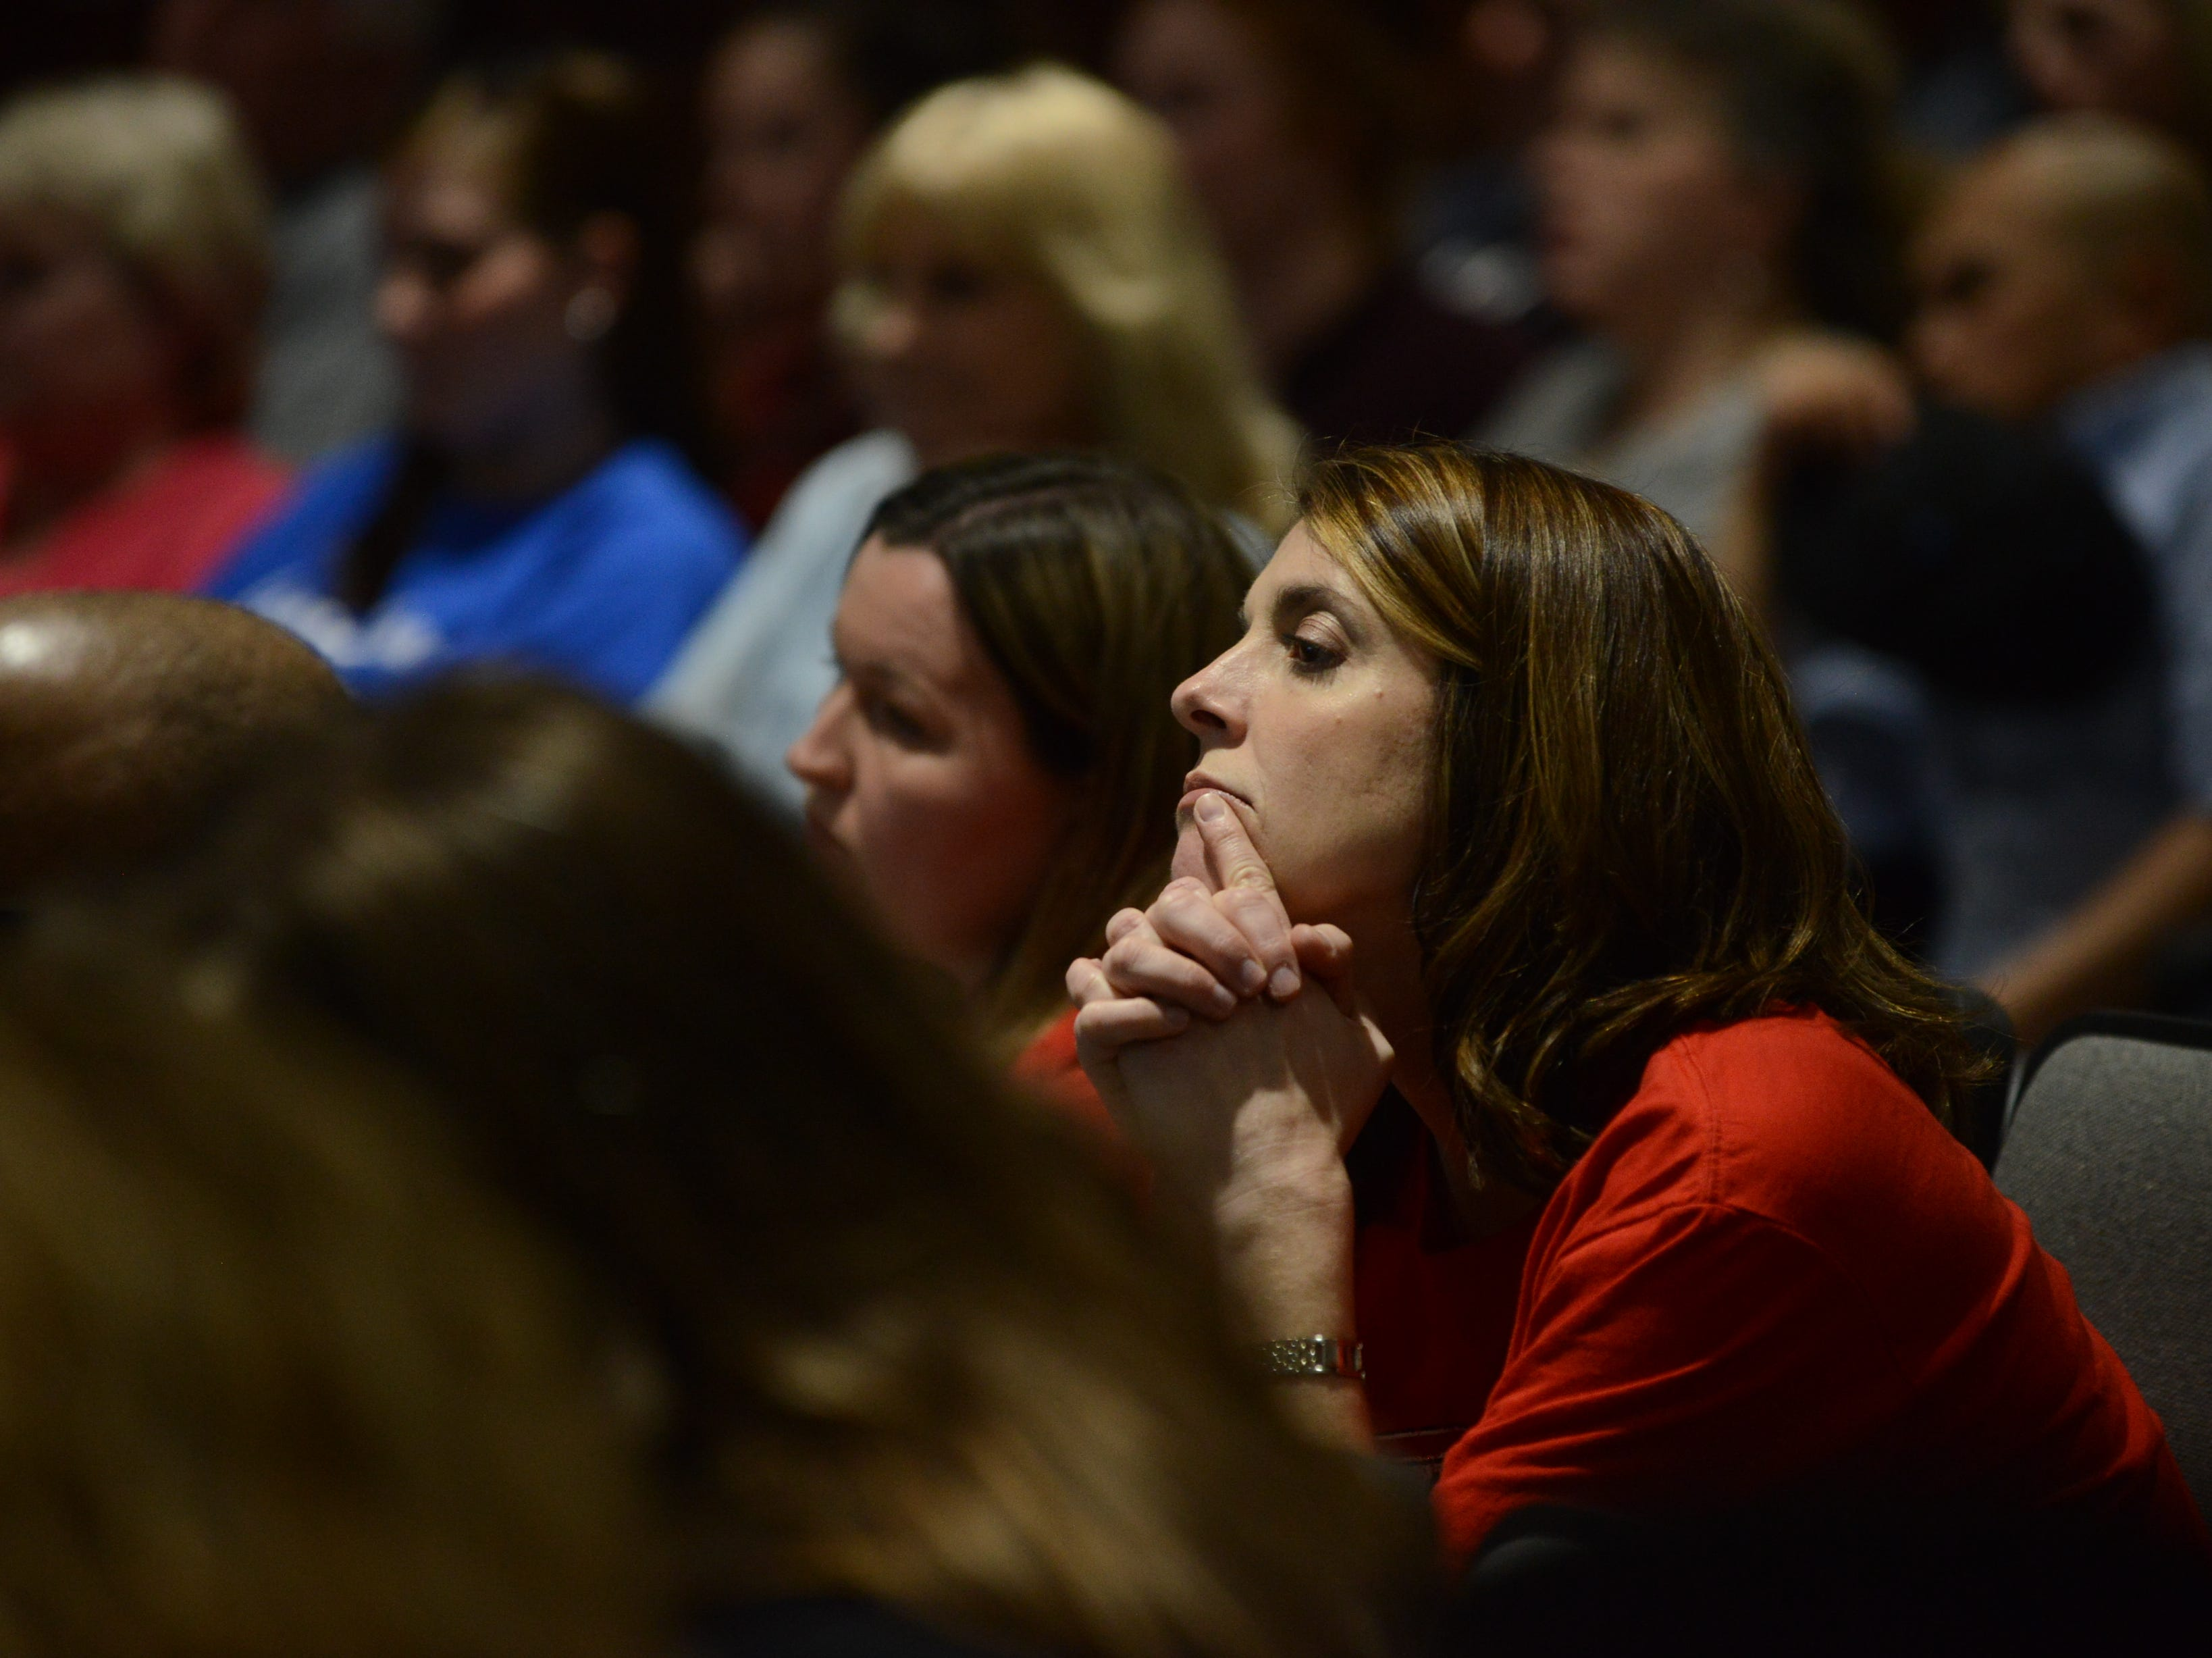 Pope Elementary School parent Ellen Neely listens intently as the school board discusses the Ashport Road land option during the JMC school board meeting at Jackson City Hall on Thursday night.